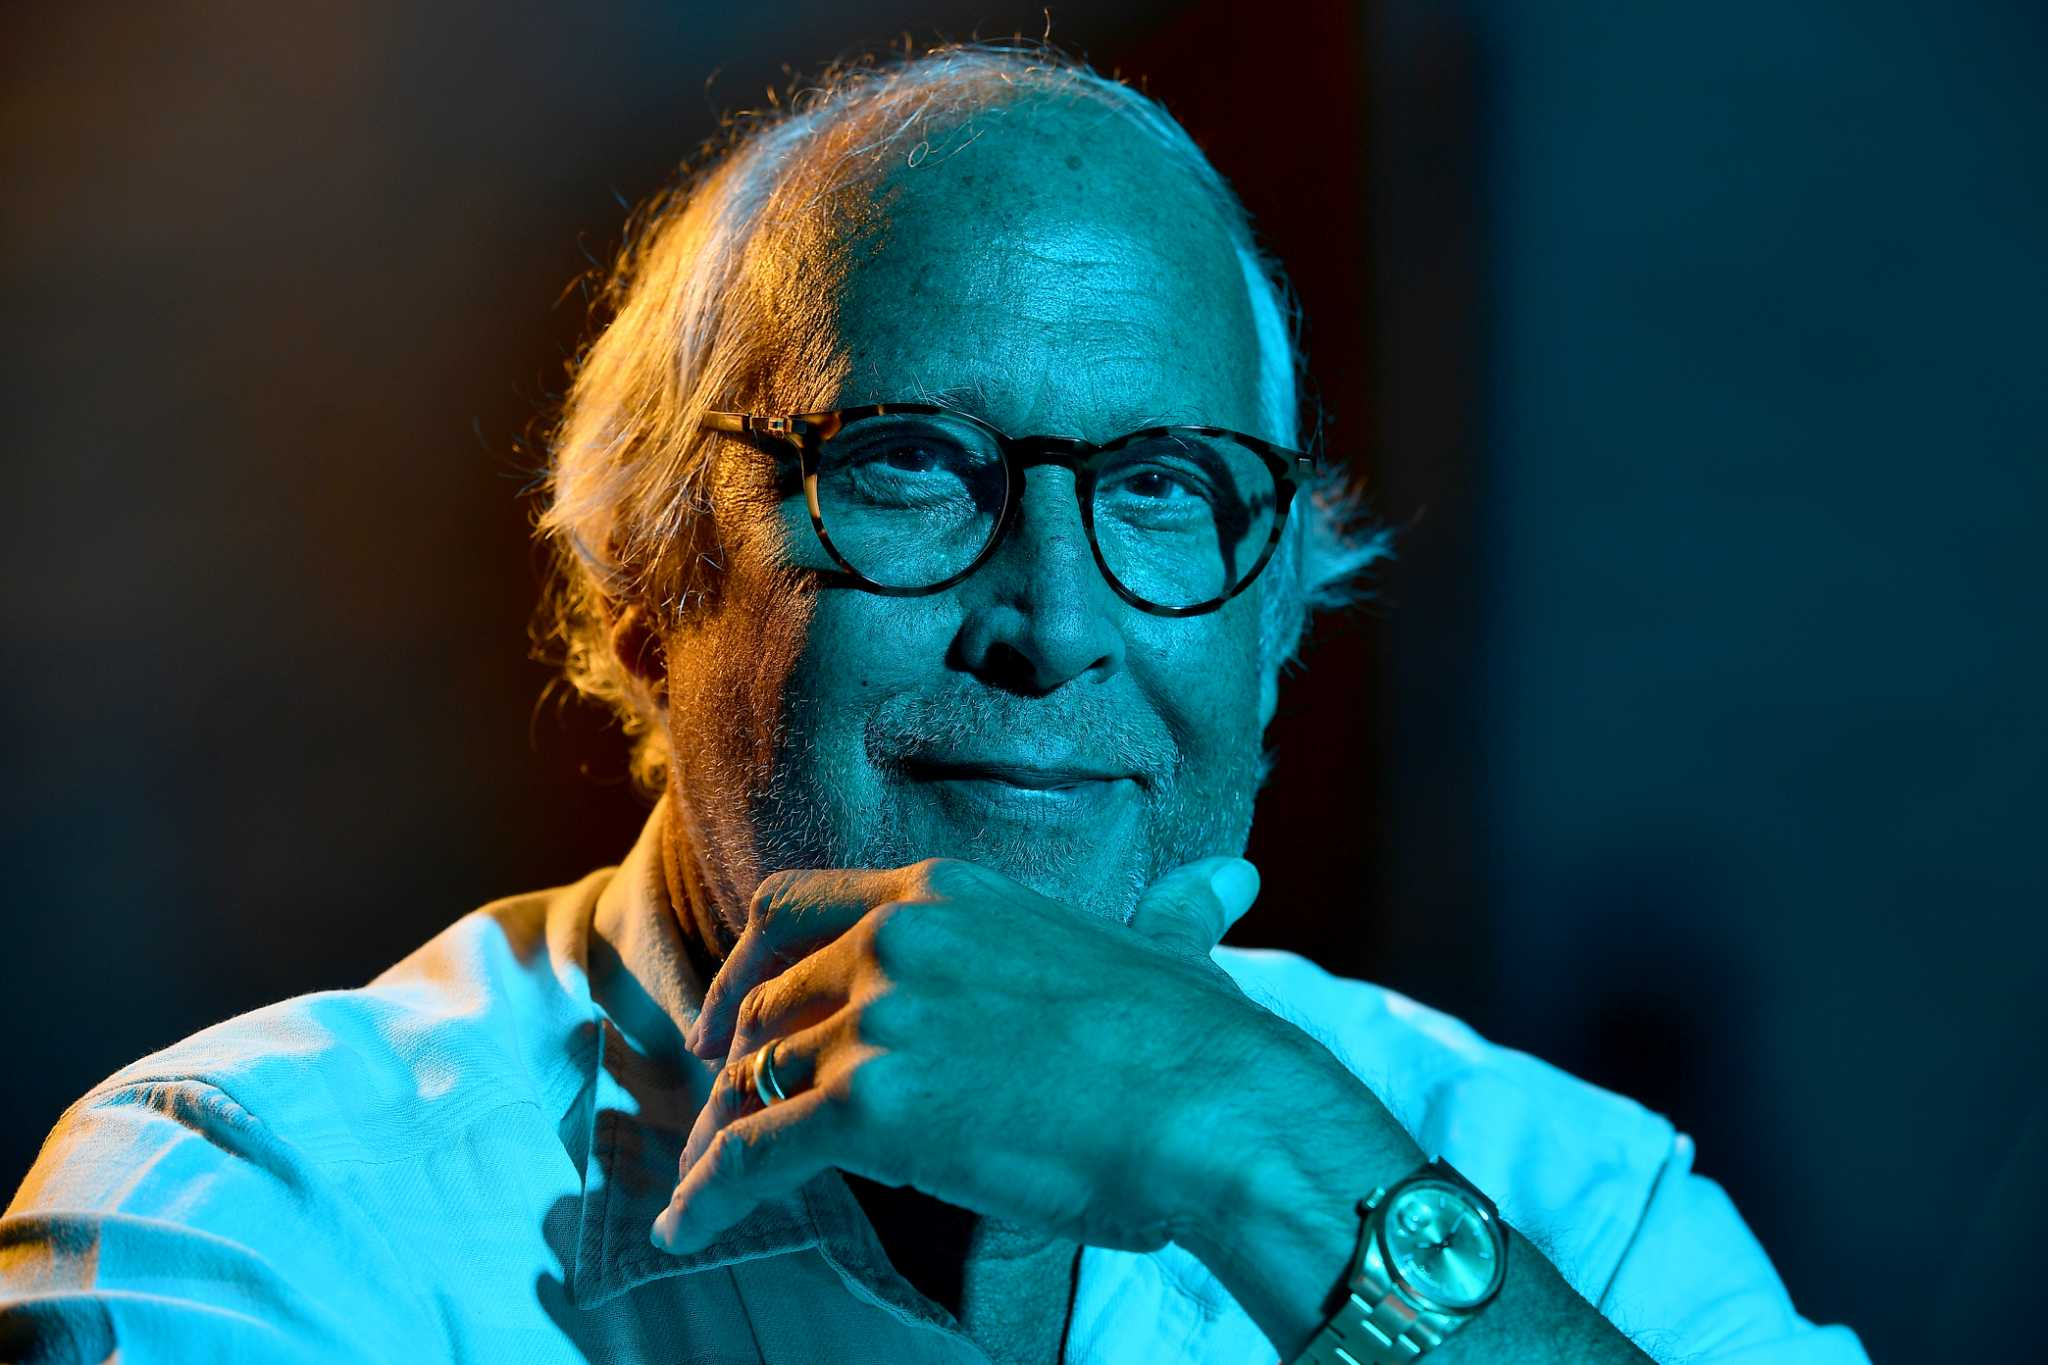 Chevy Chase can't change - SFGate